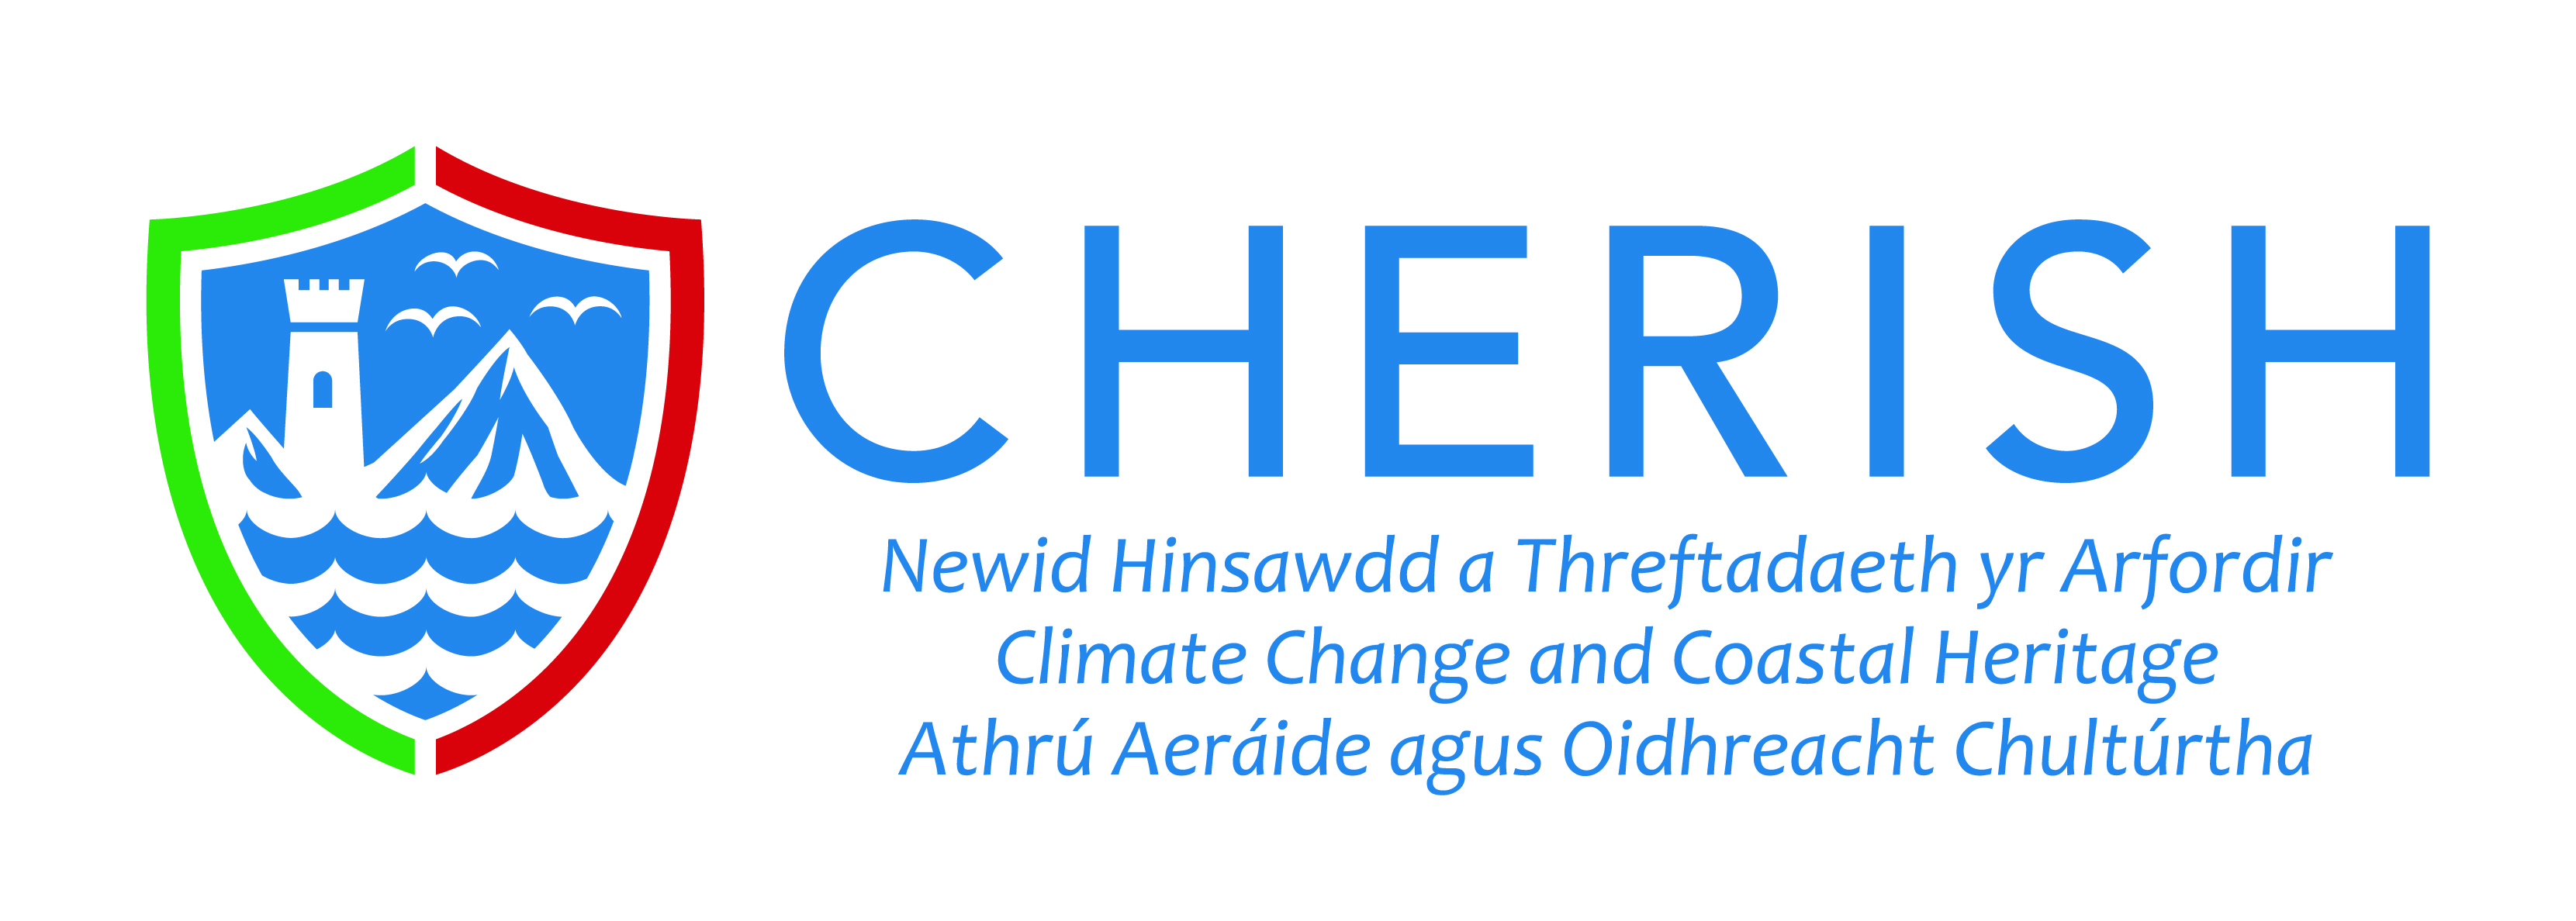 CHERISH Logo (VARIOUS)